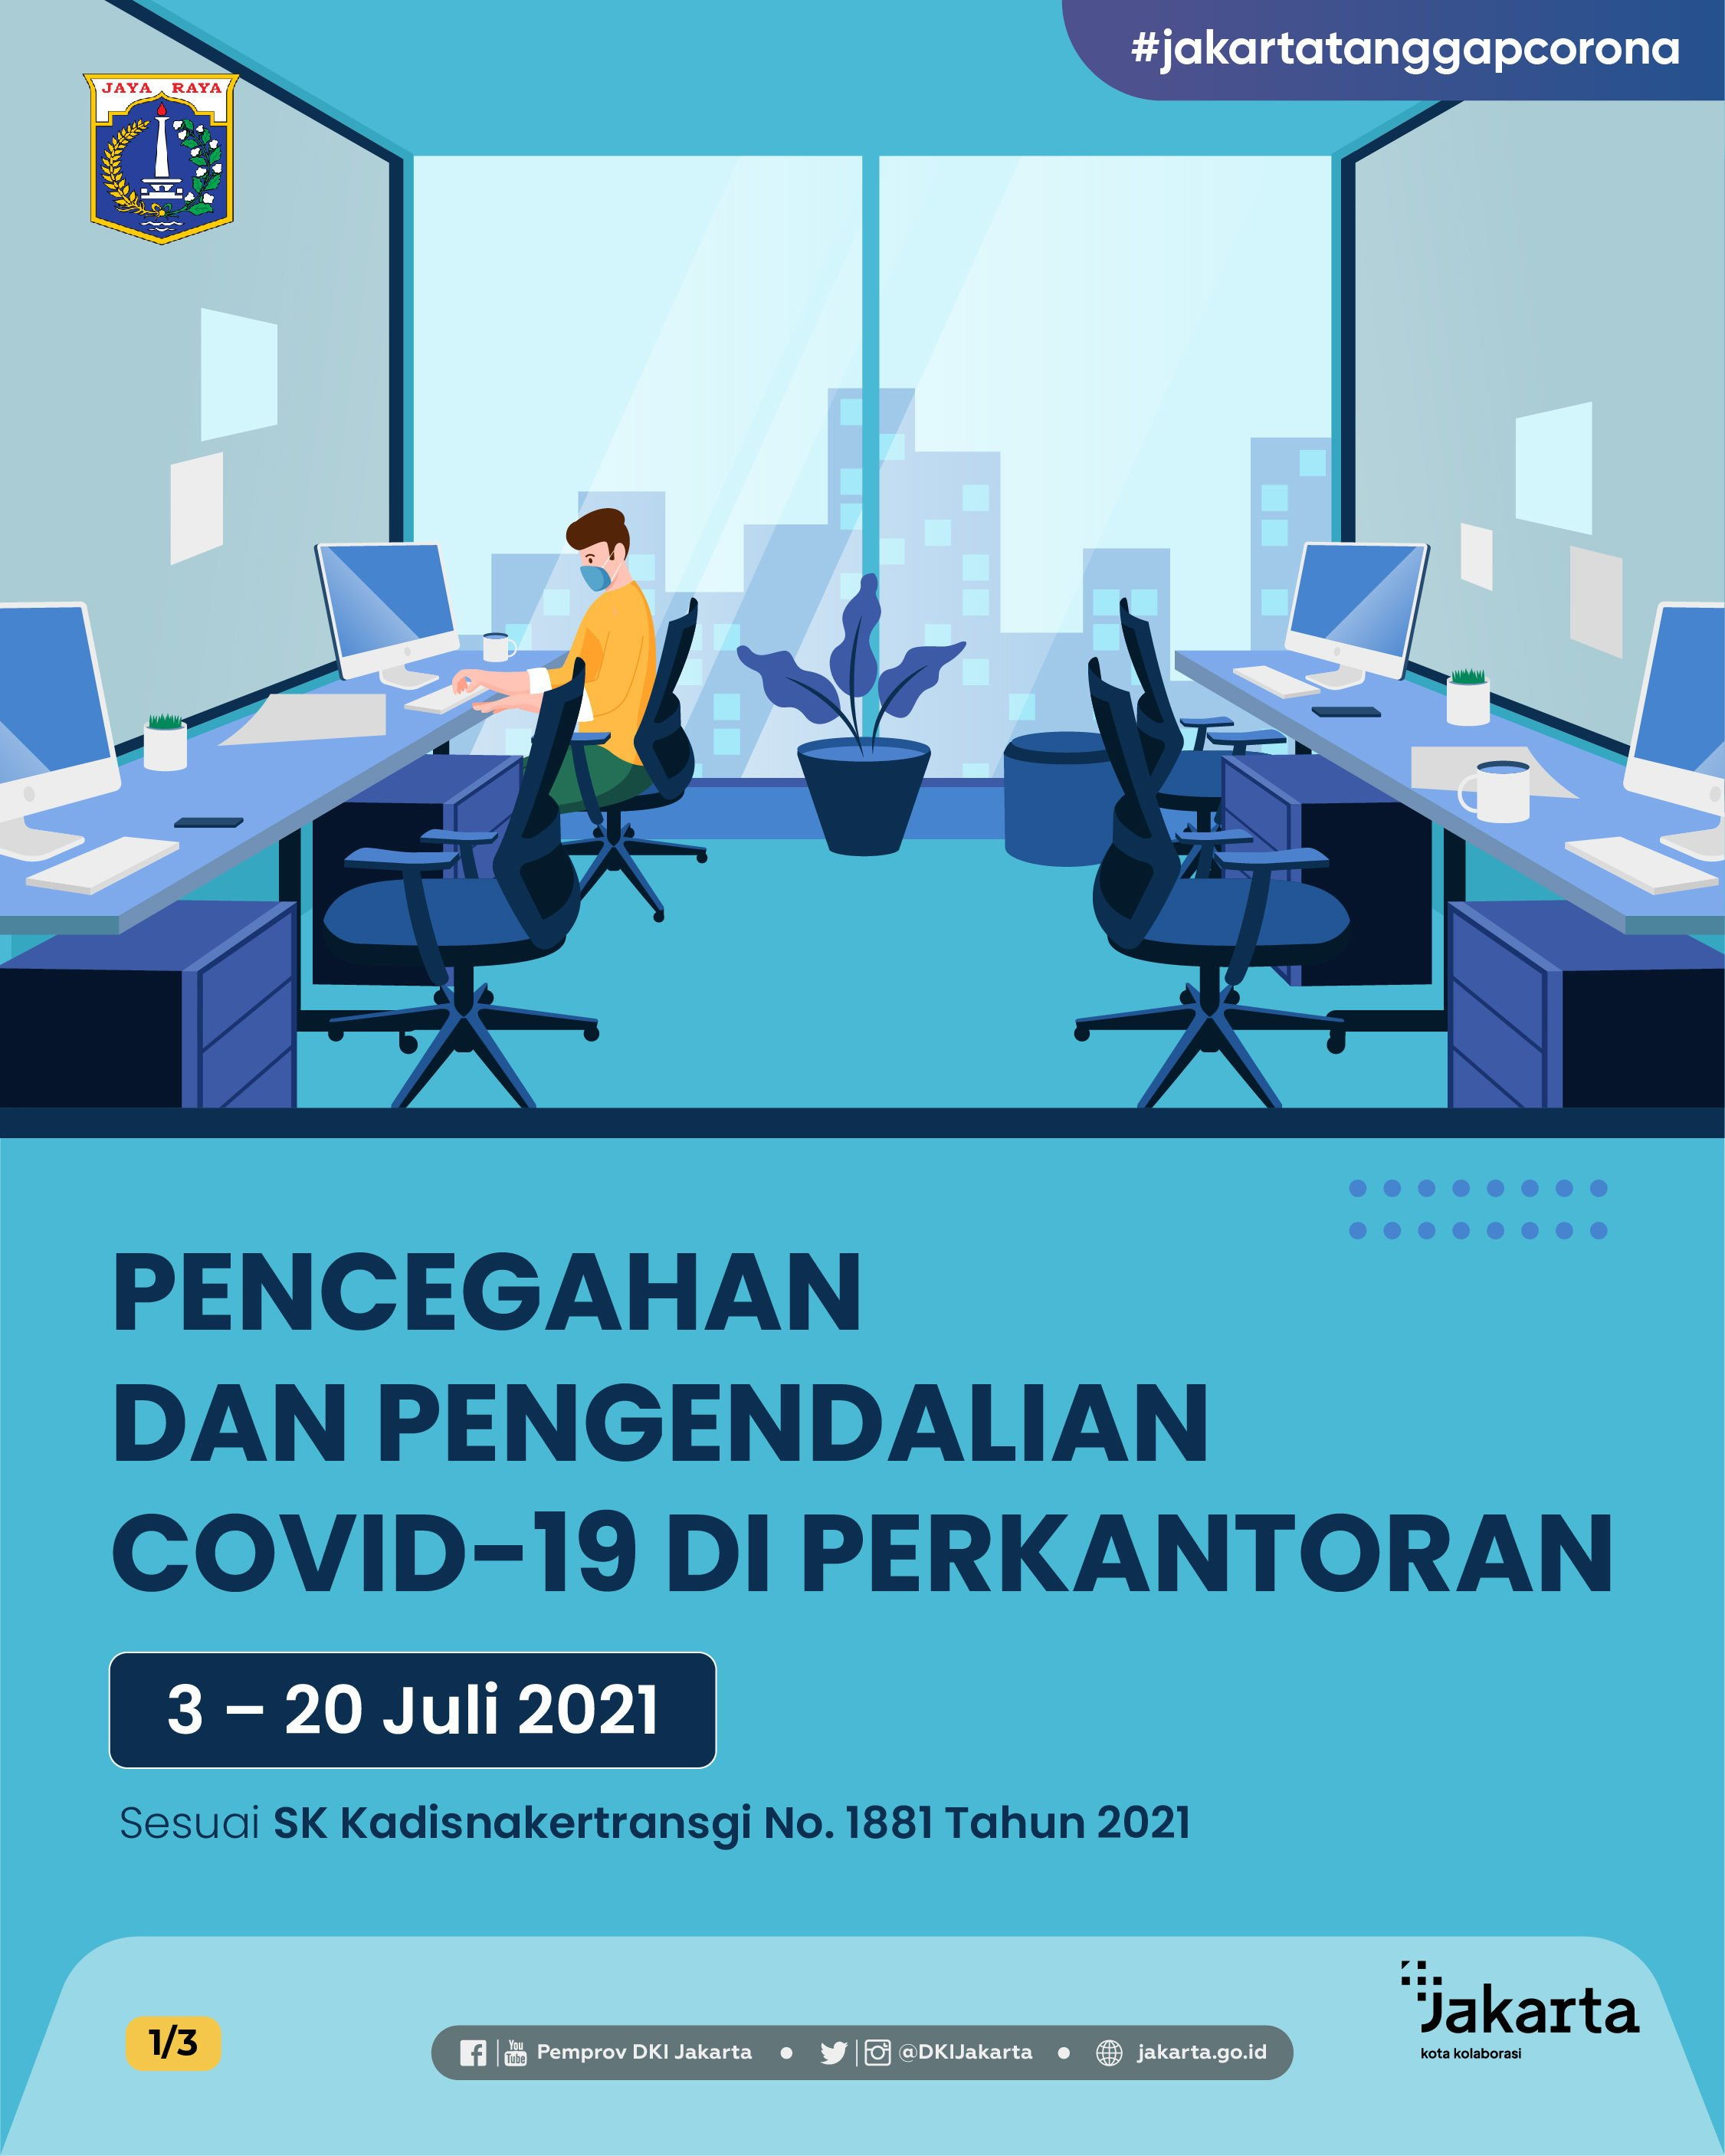 Covid-19 Prevention and Control At Offices